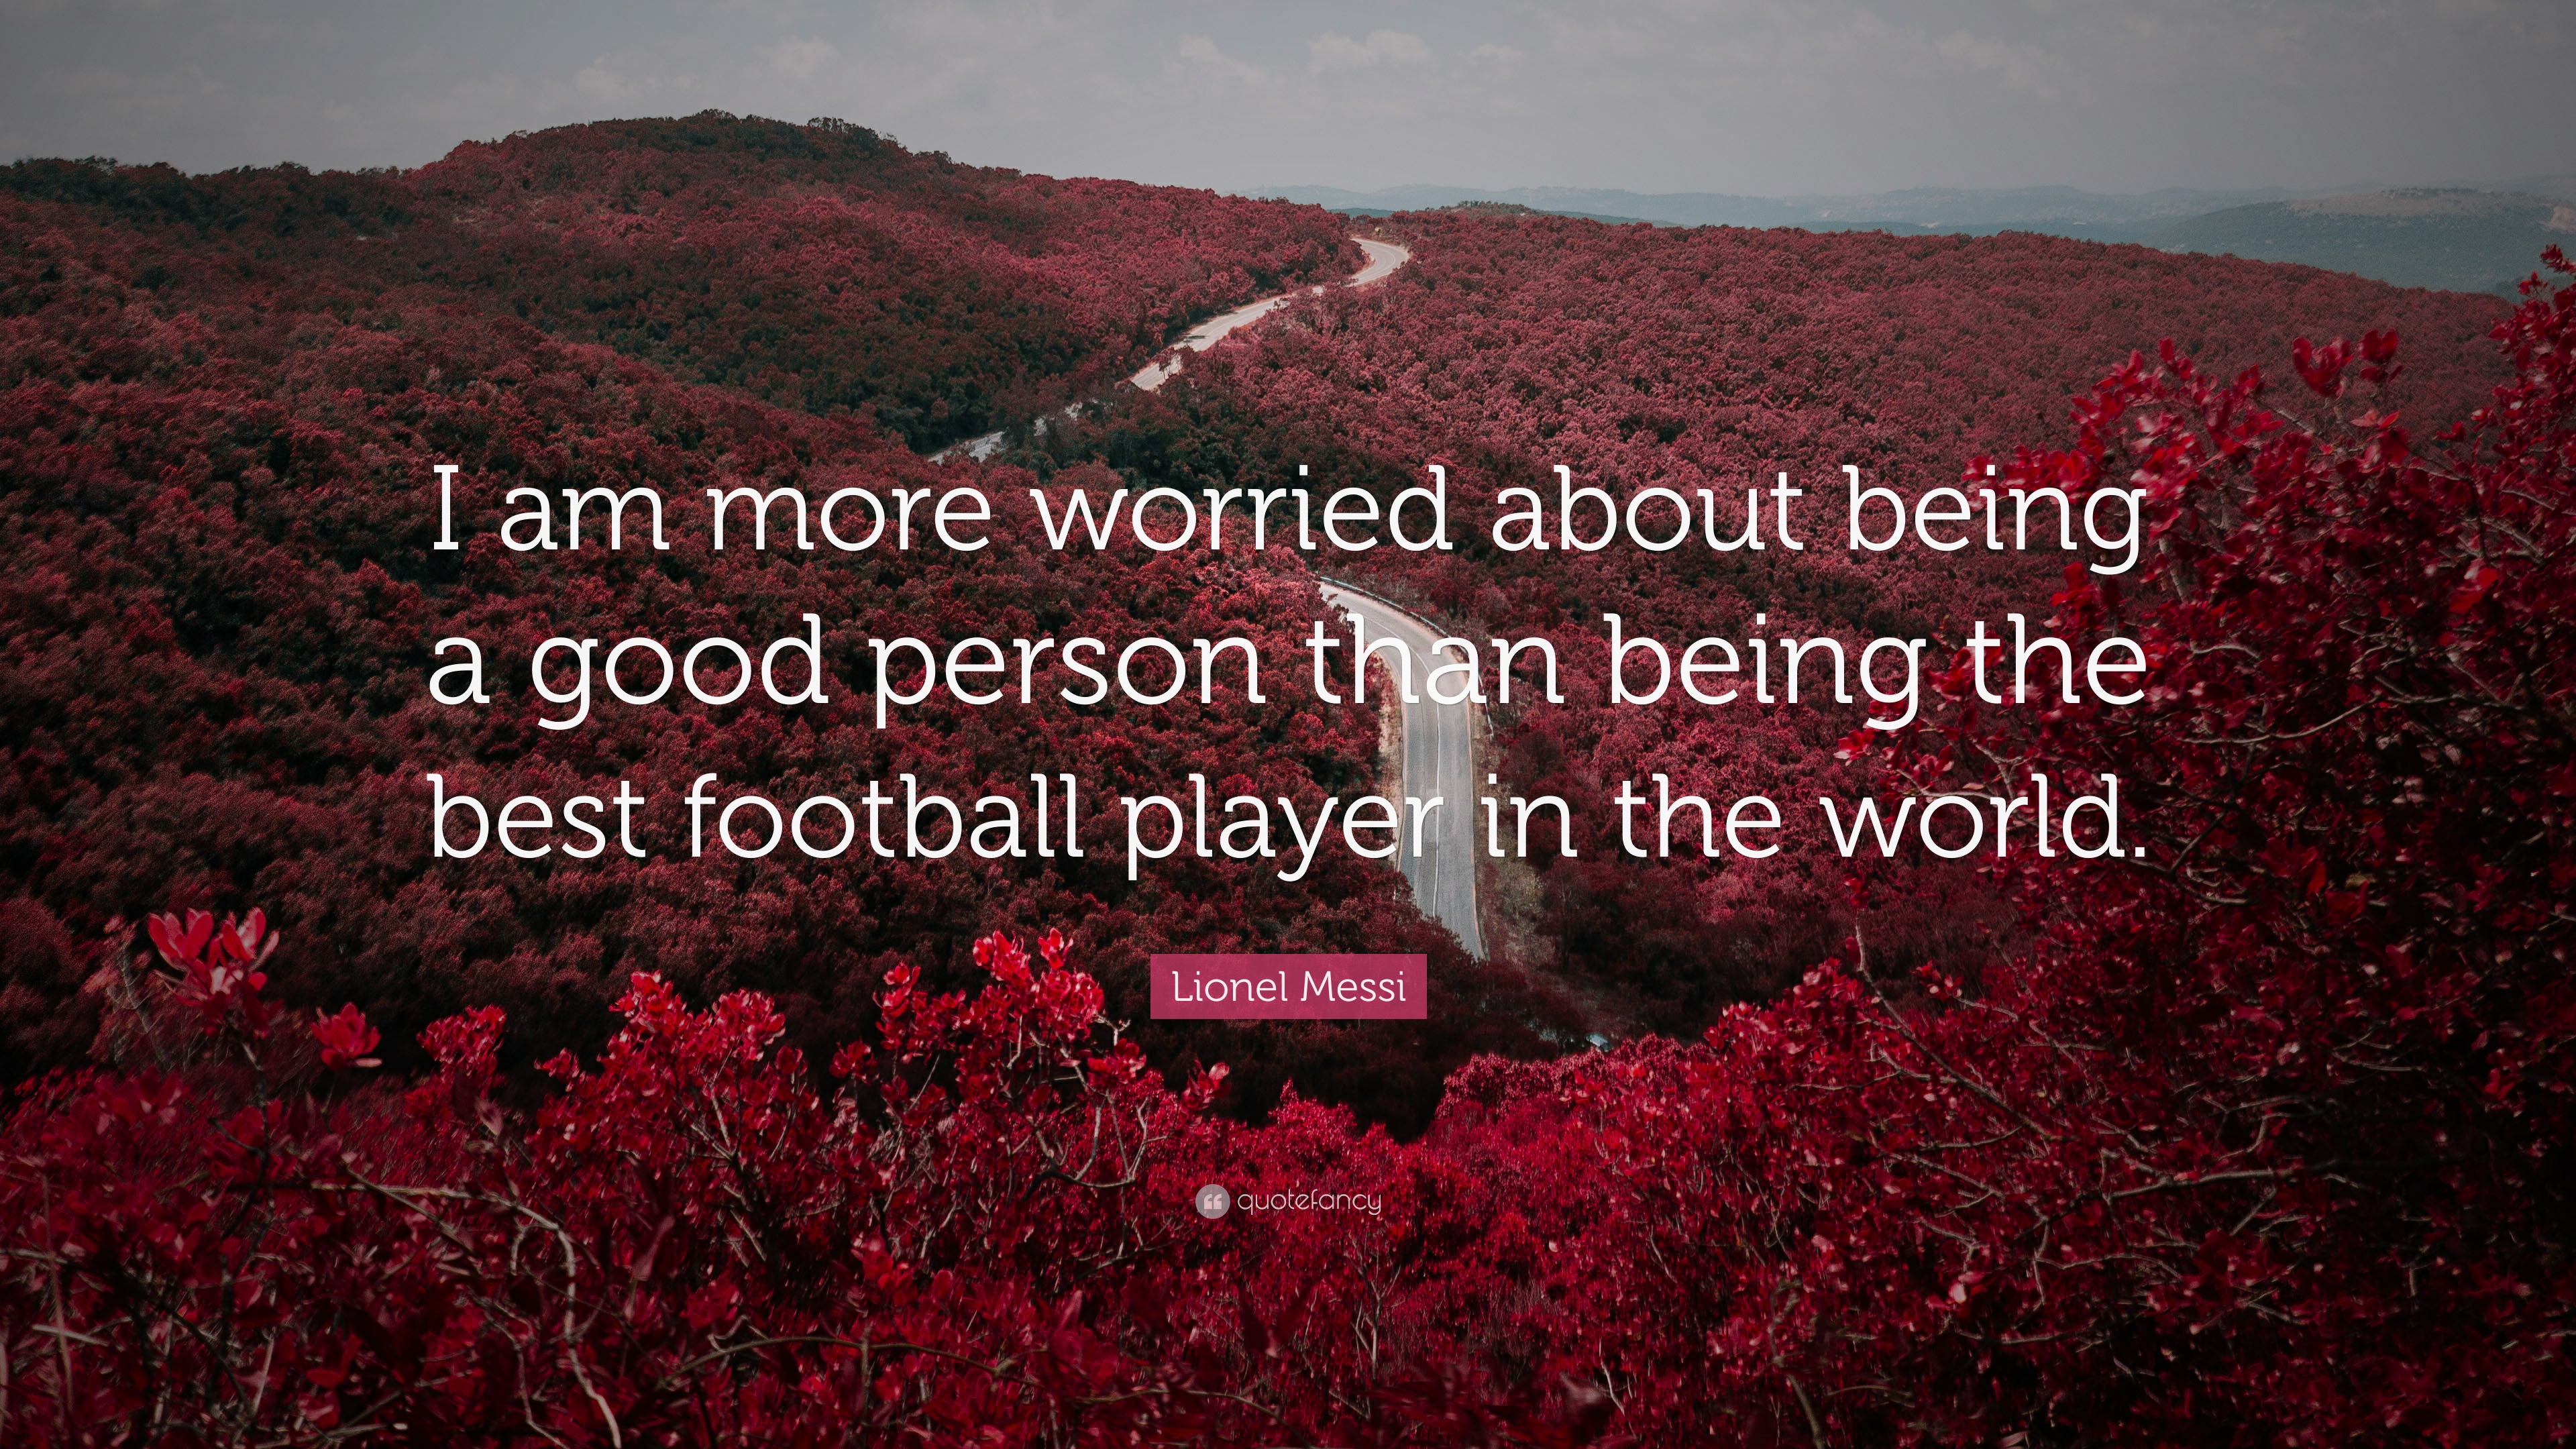 Lionel Messi Quote: U201cI Am More Worried About Being A Good Person Than Being